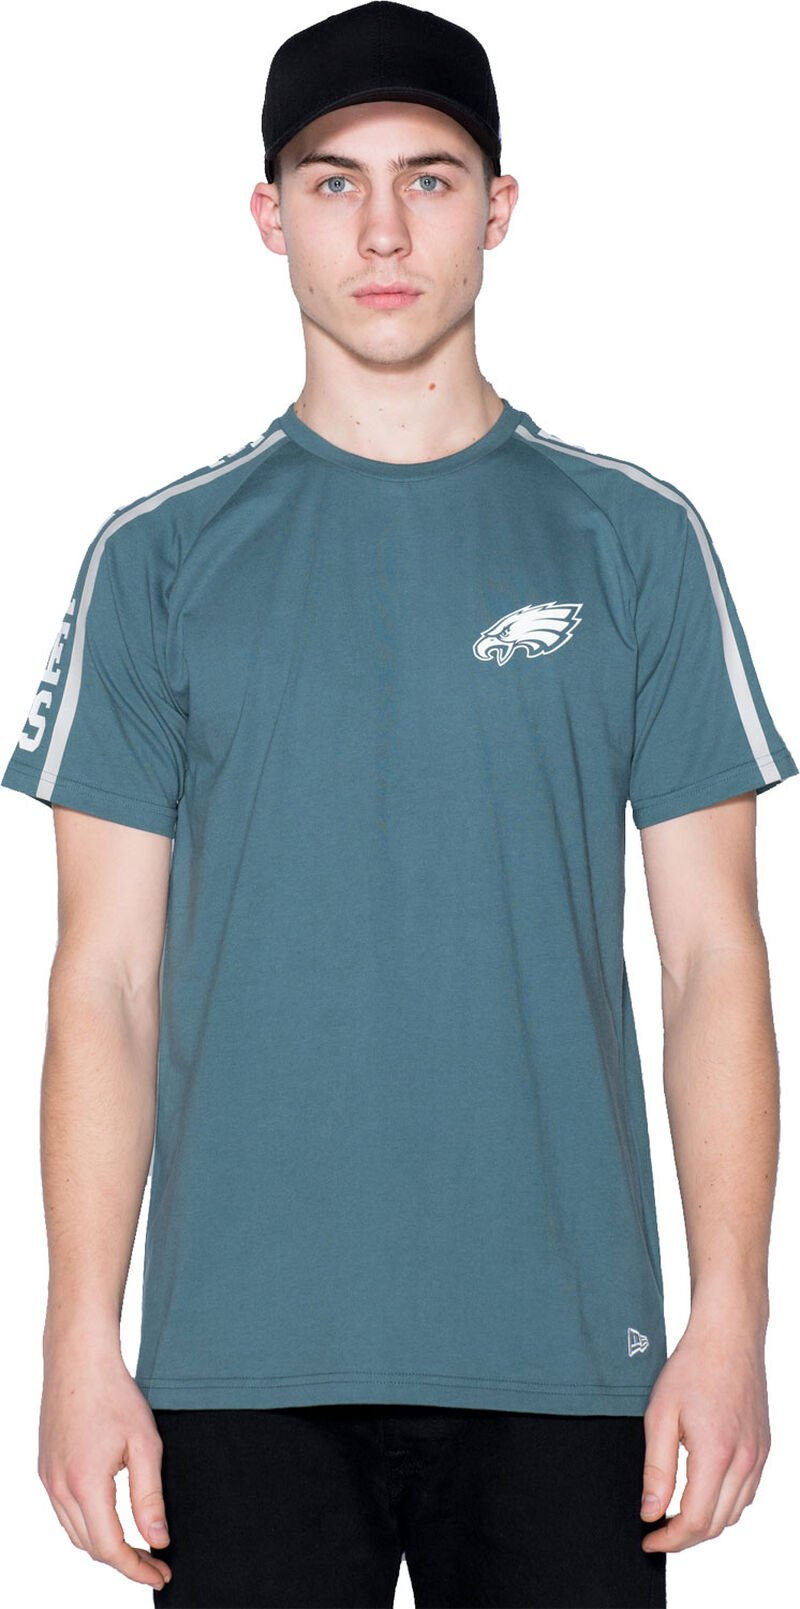 NFL Raglan Shoulder Print Philadelphia Eagles